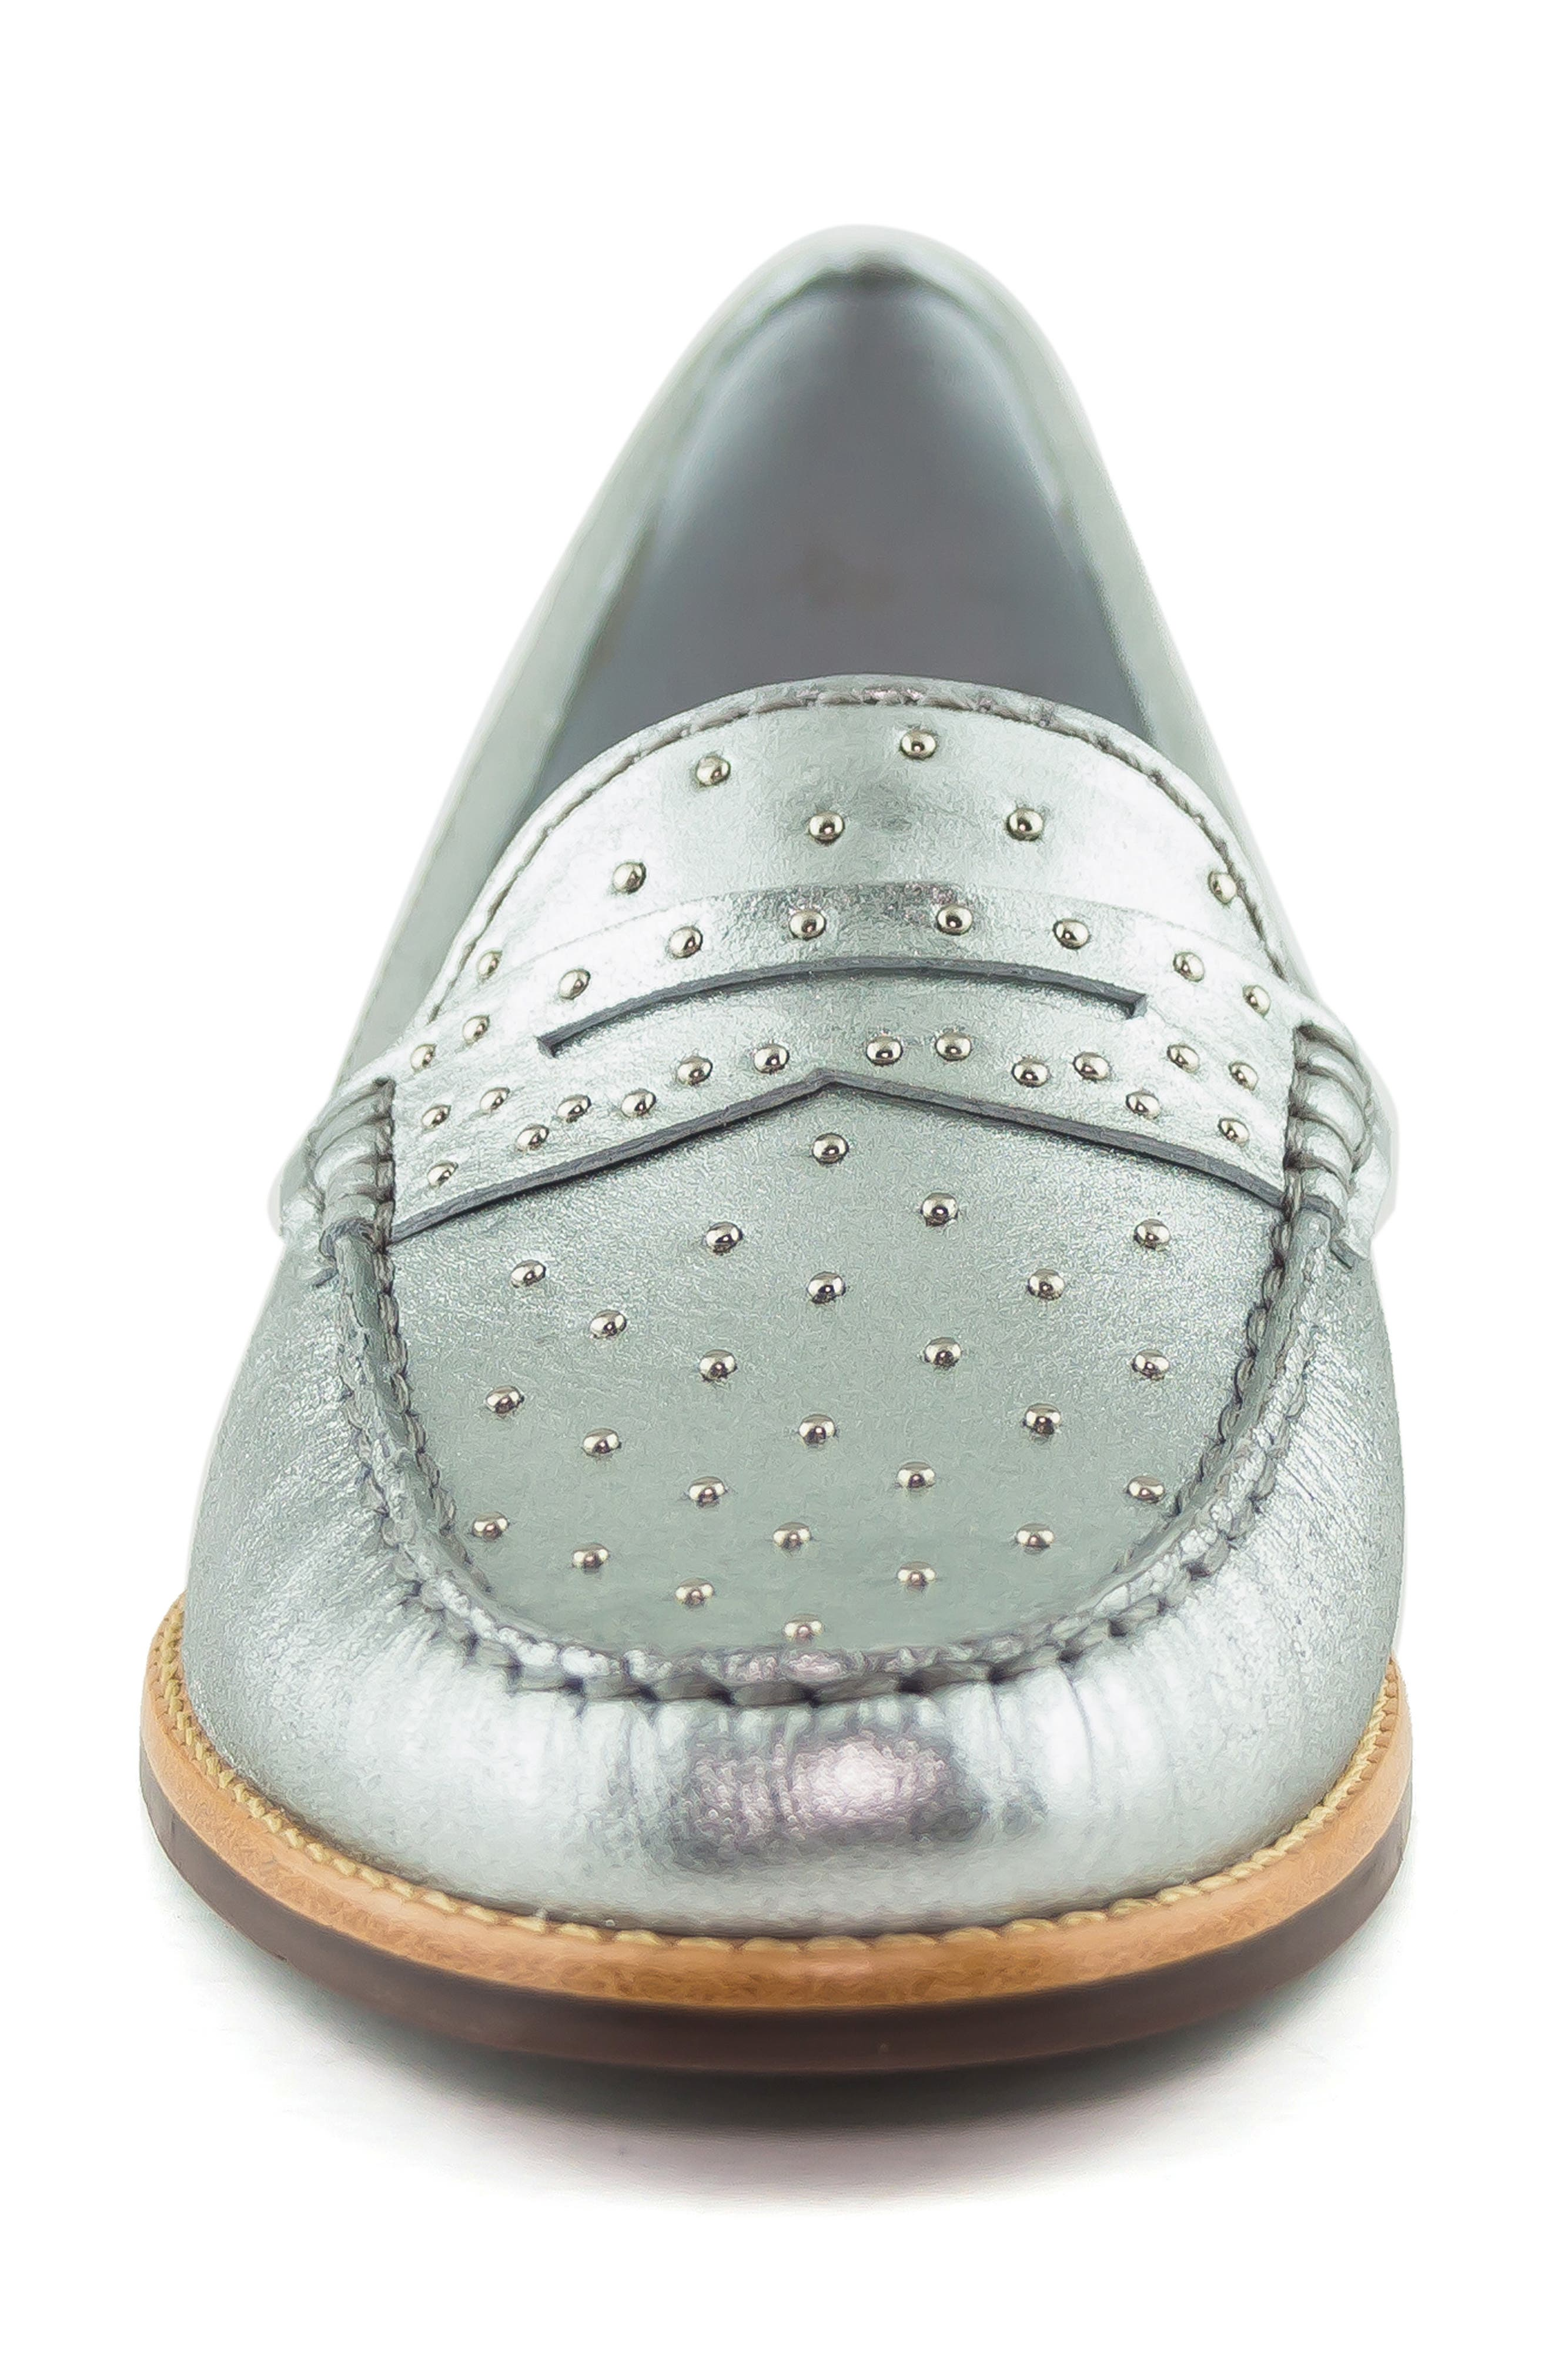 MARC JOSEPH NEW YORK, East Village III Studded Loafer, Alternate thumbnail 4, color, SILVER LEATHER